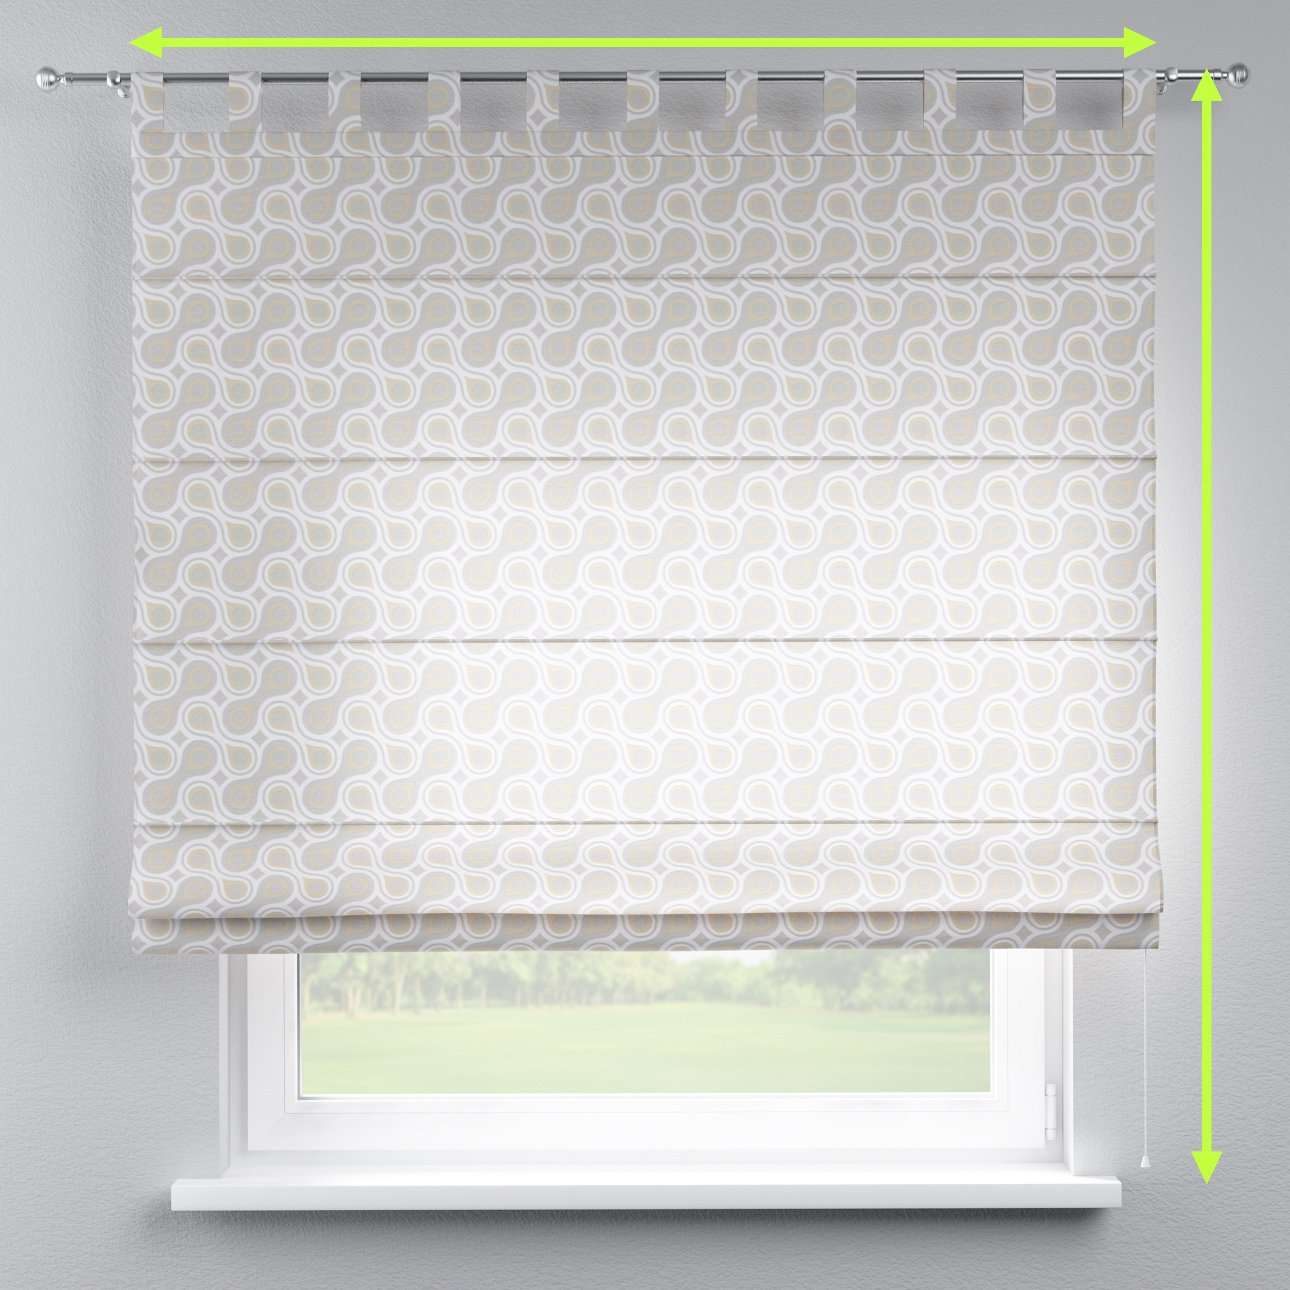 Verona tab top roman blind in collection Flowers, fabric: 311-11